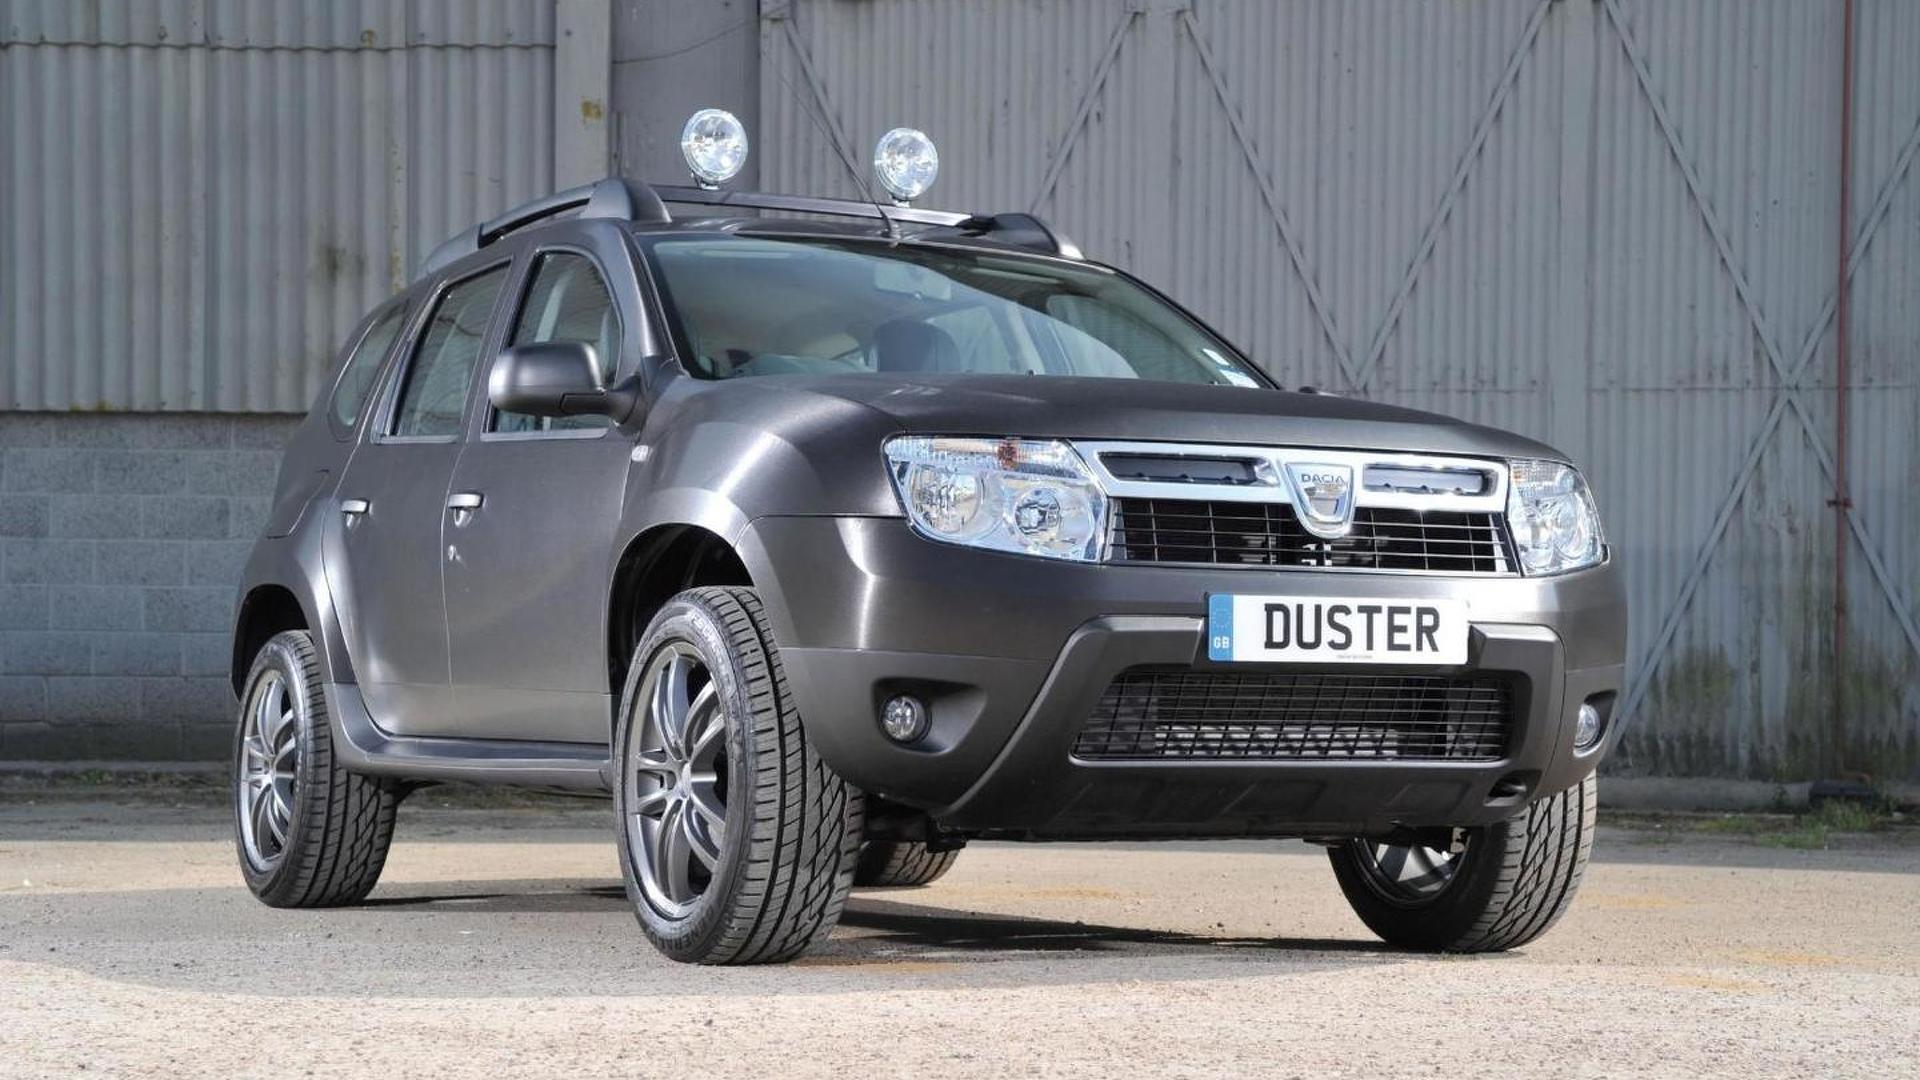 Renault duster price in usa